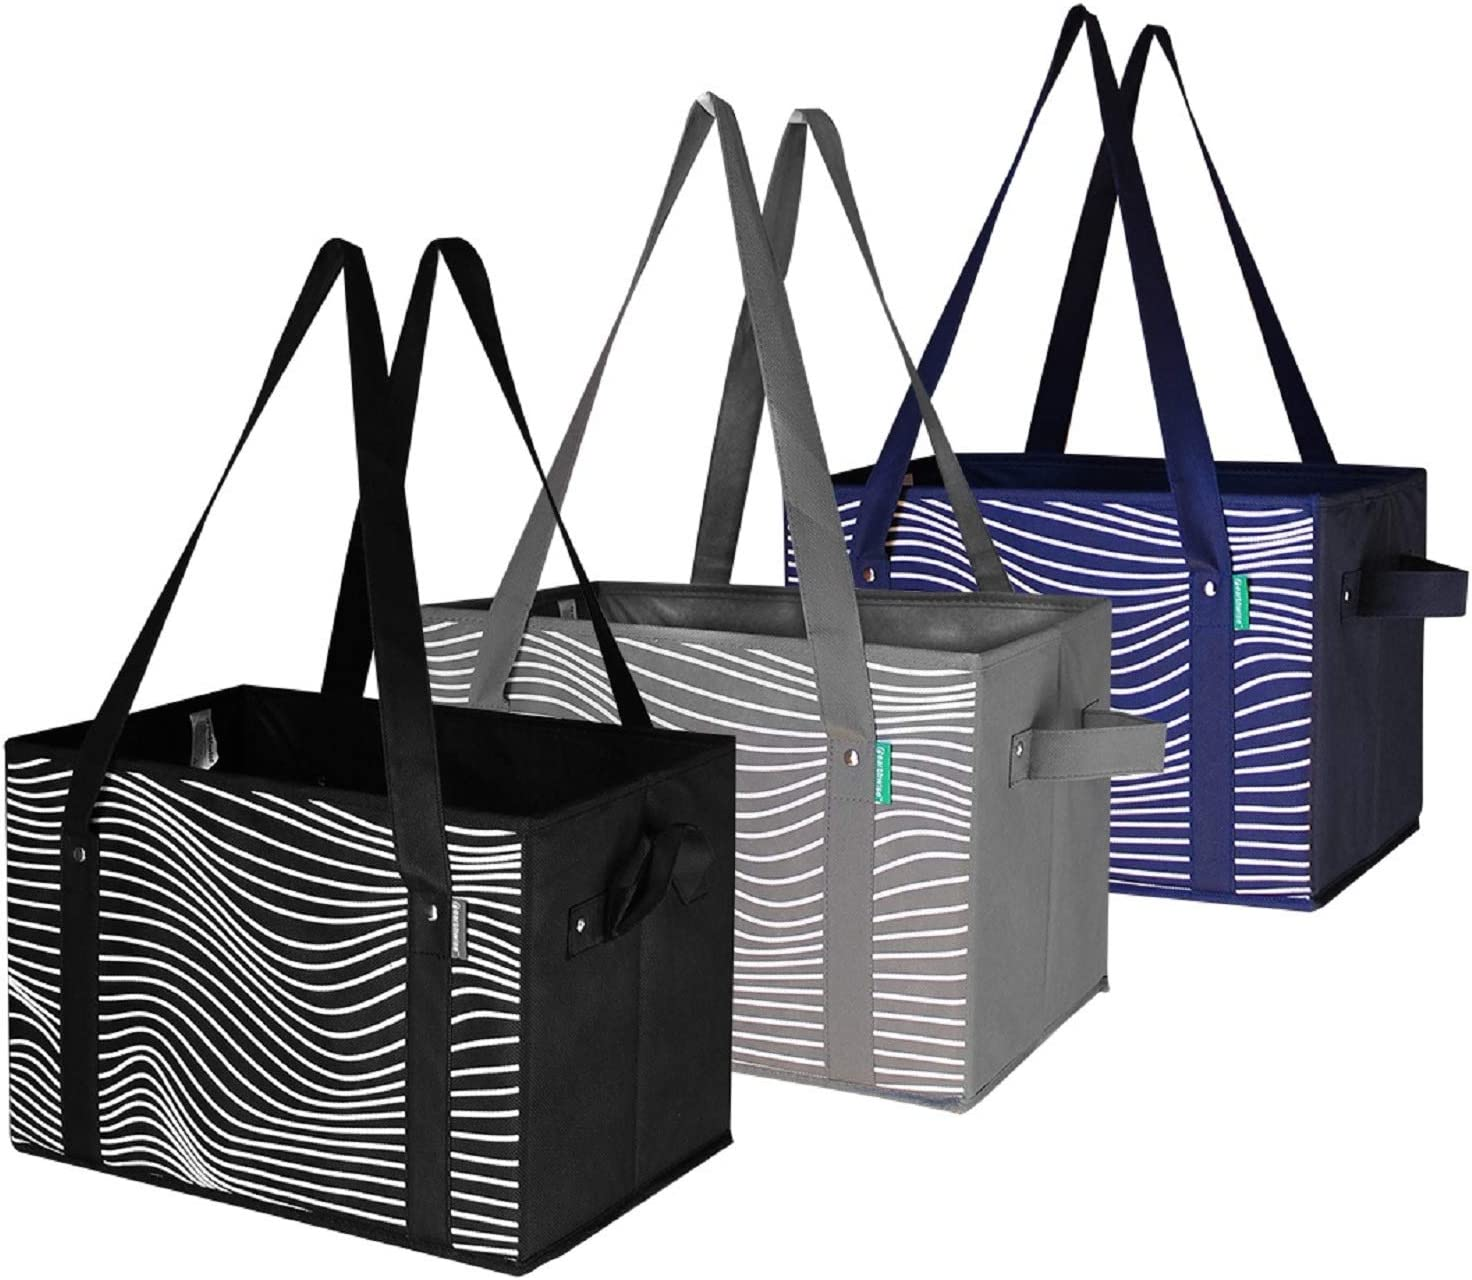 Reusable Grocery Bags Set Shopping Box with Reinforced Bottom Heavy Duty Premium Collapsible Foldable with Long Handles Storage Boxes Eco Friendly Bins Cubes (Set of 3) (Black/Grey/Navy)